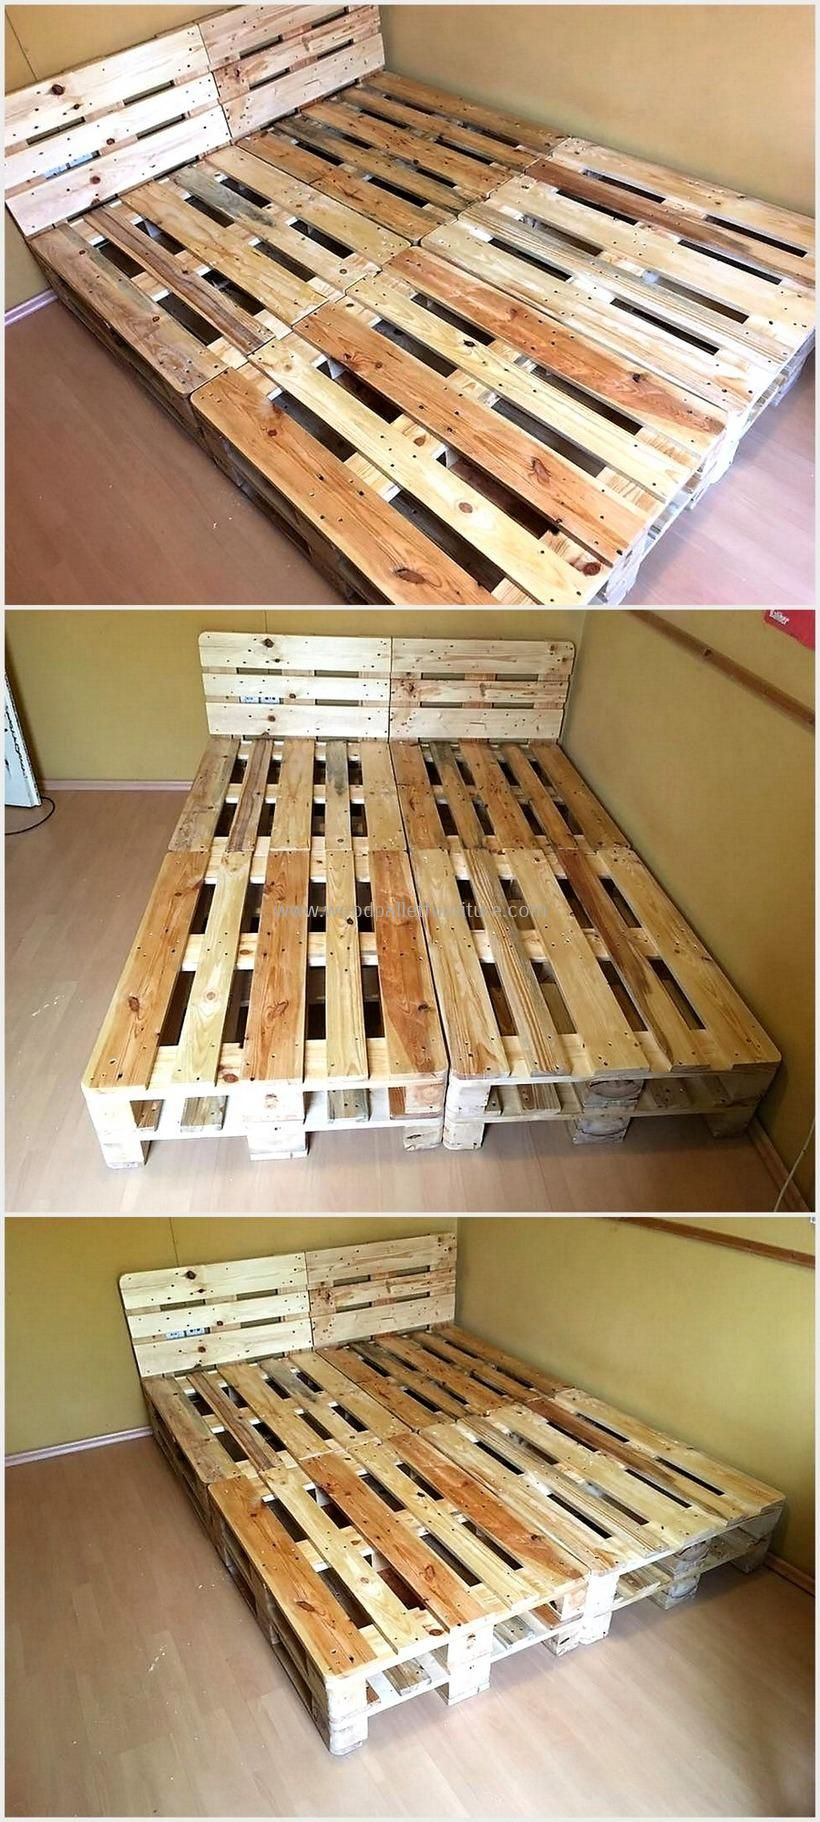 Diy wood platform bed frame cheap home furnishing with wooden pallets  wood pallets pallets